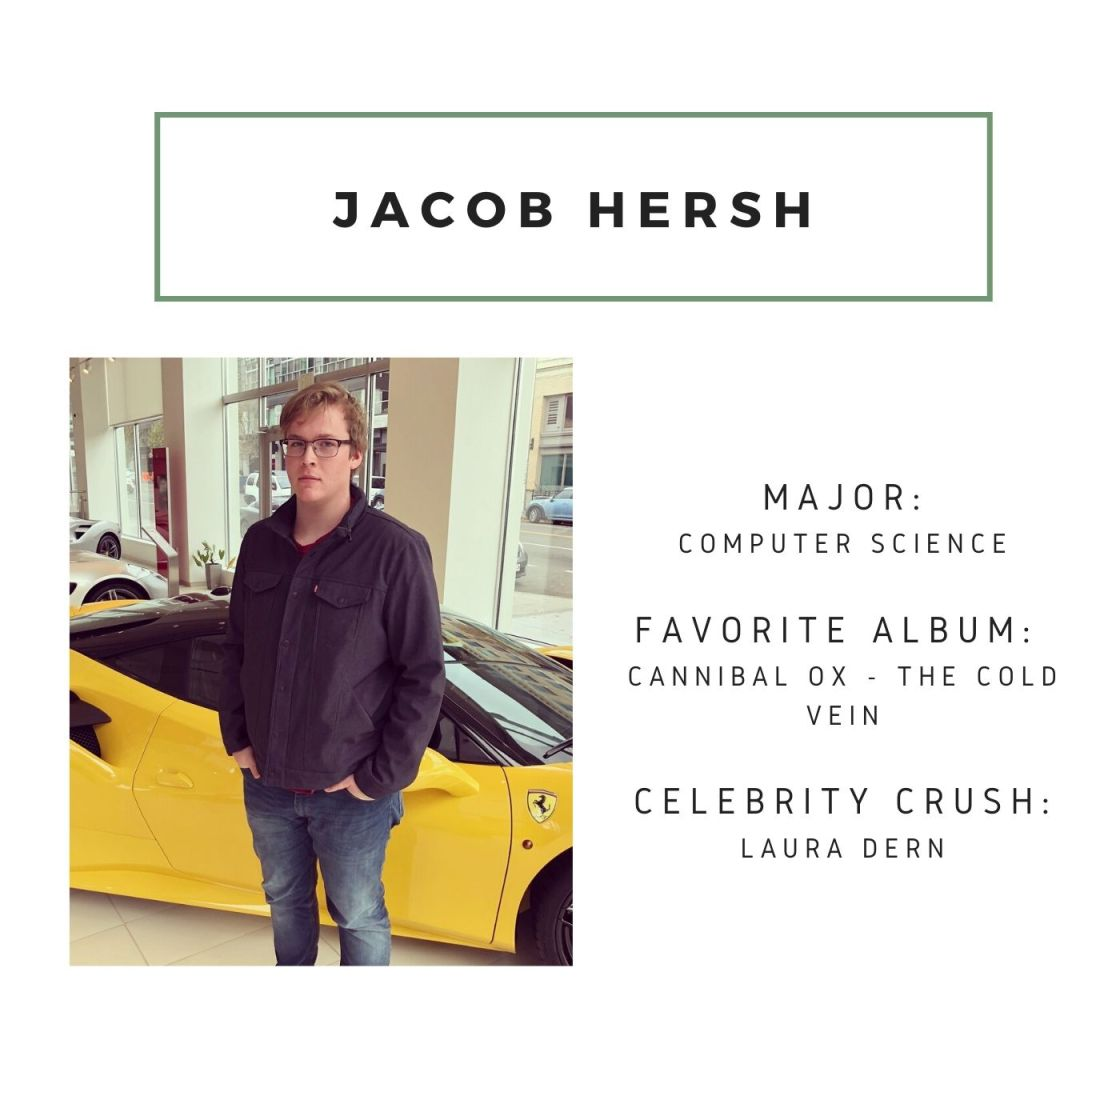 Jacob Hersh